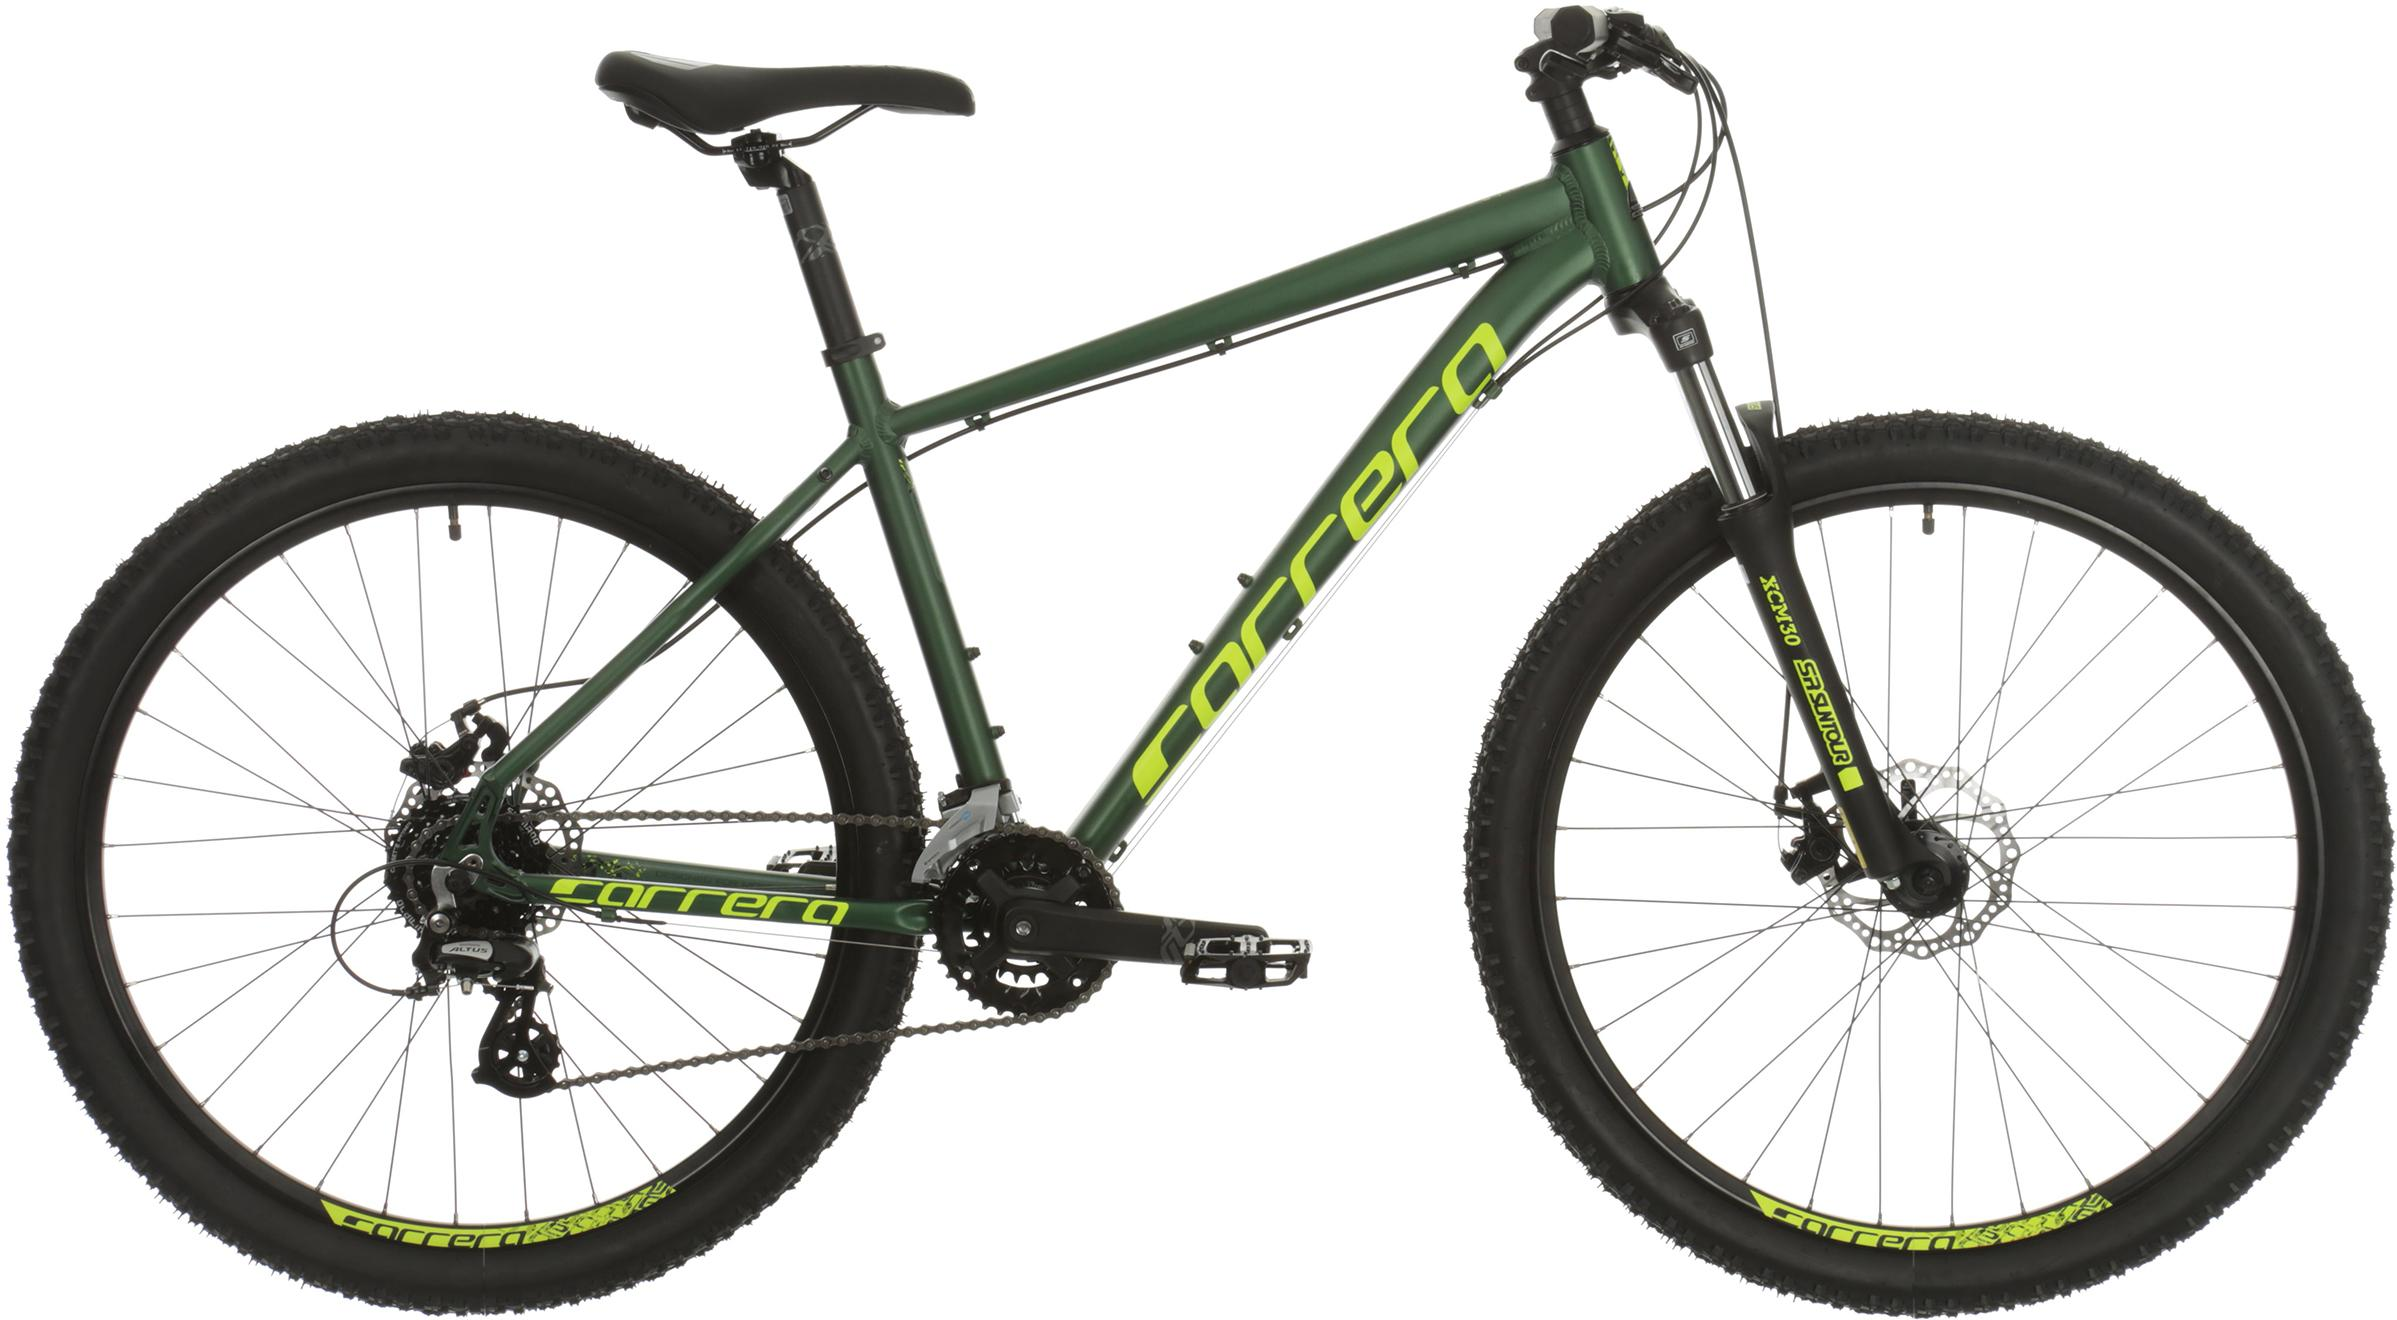 Carrera Vengeance Mens Mountain Bike (Without Puncture Protect) - Green